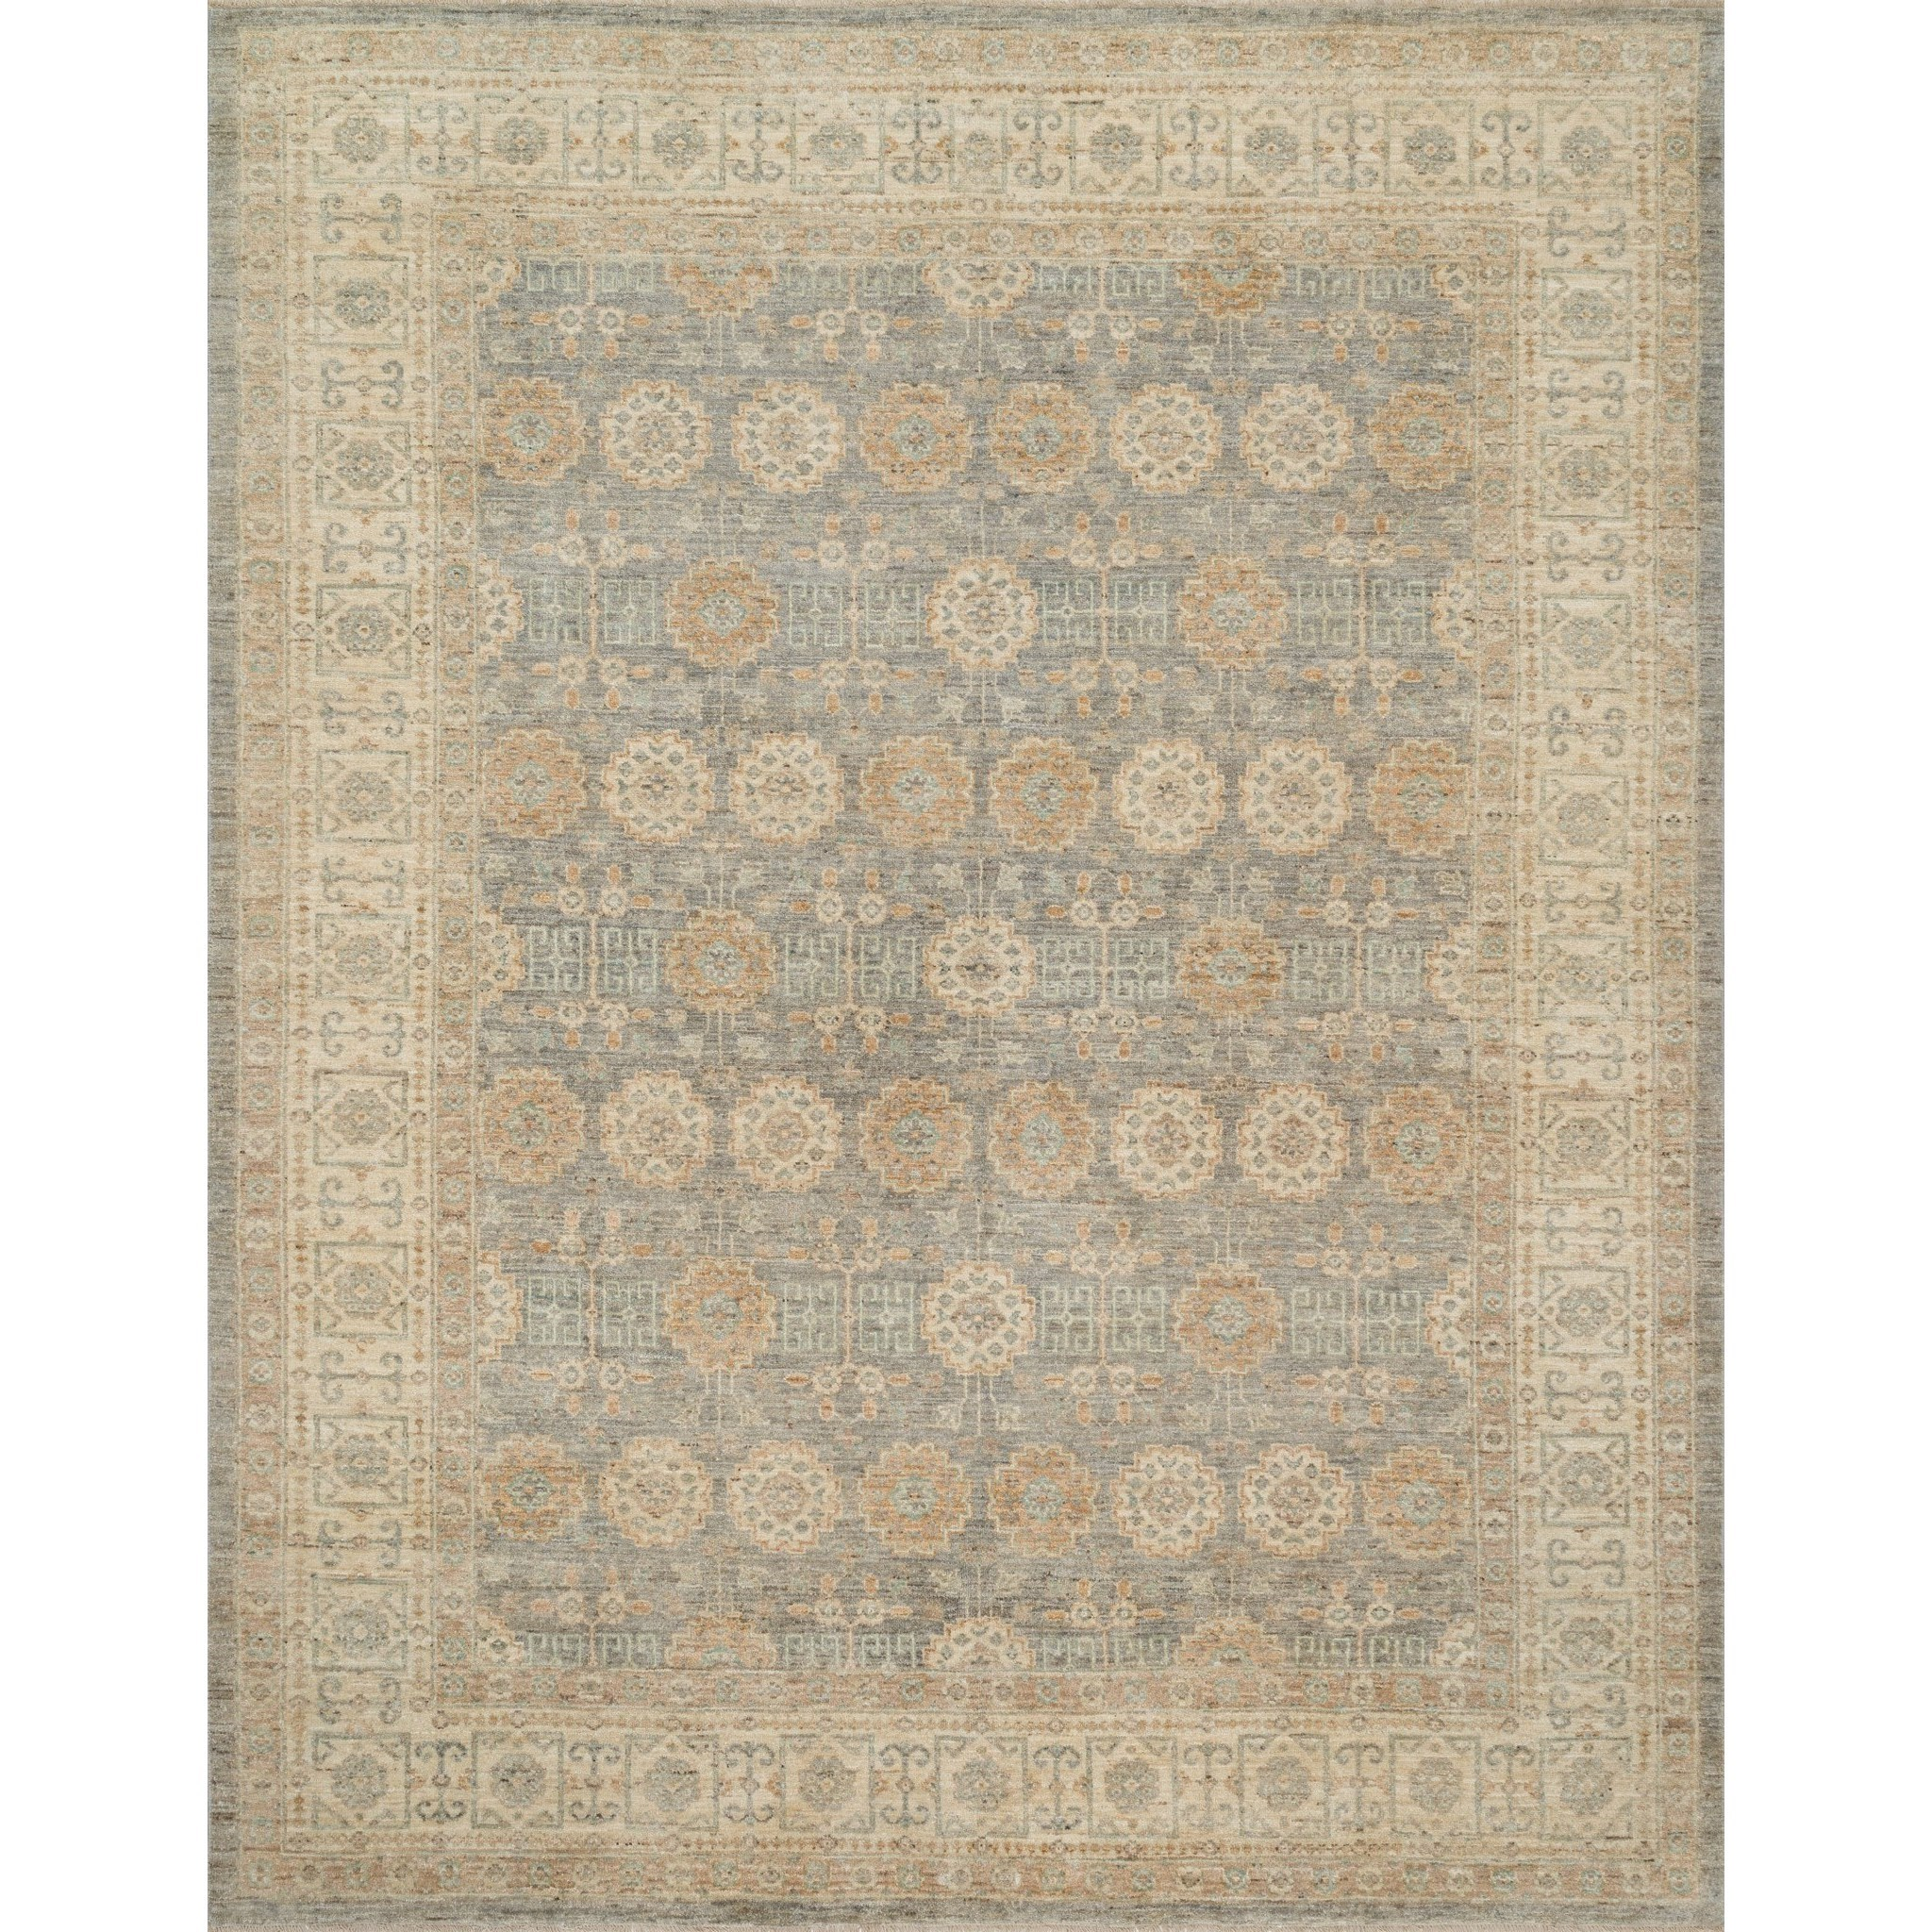 "Majestic 2'-6"" x 10'-0"" Runner by Loloi Rugs at Virginia Furniture Market"